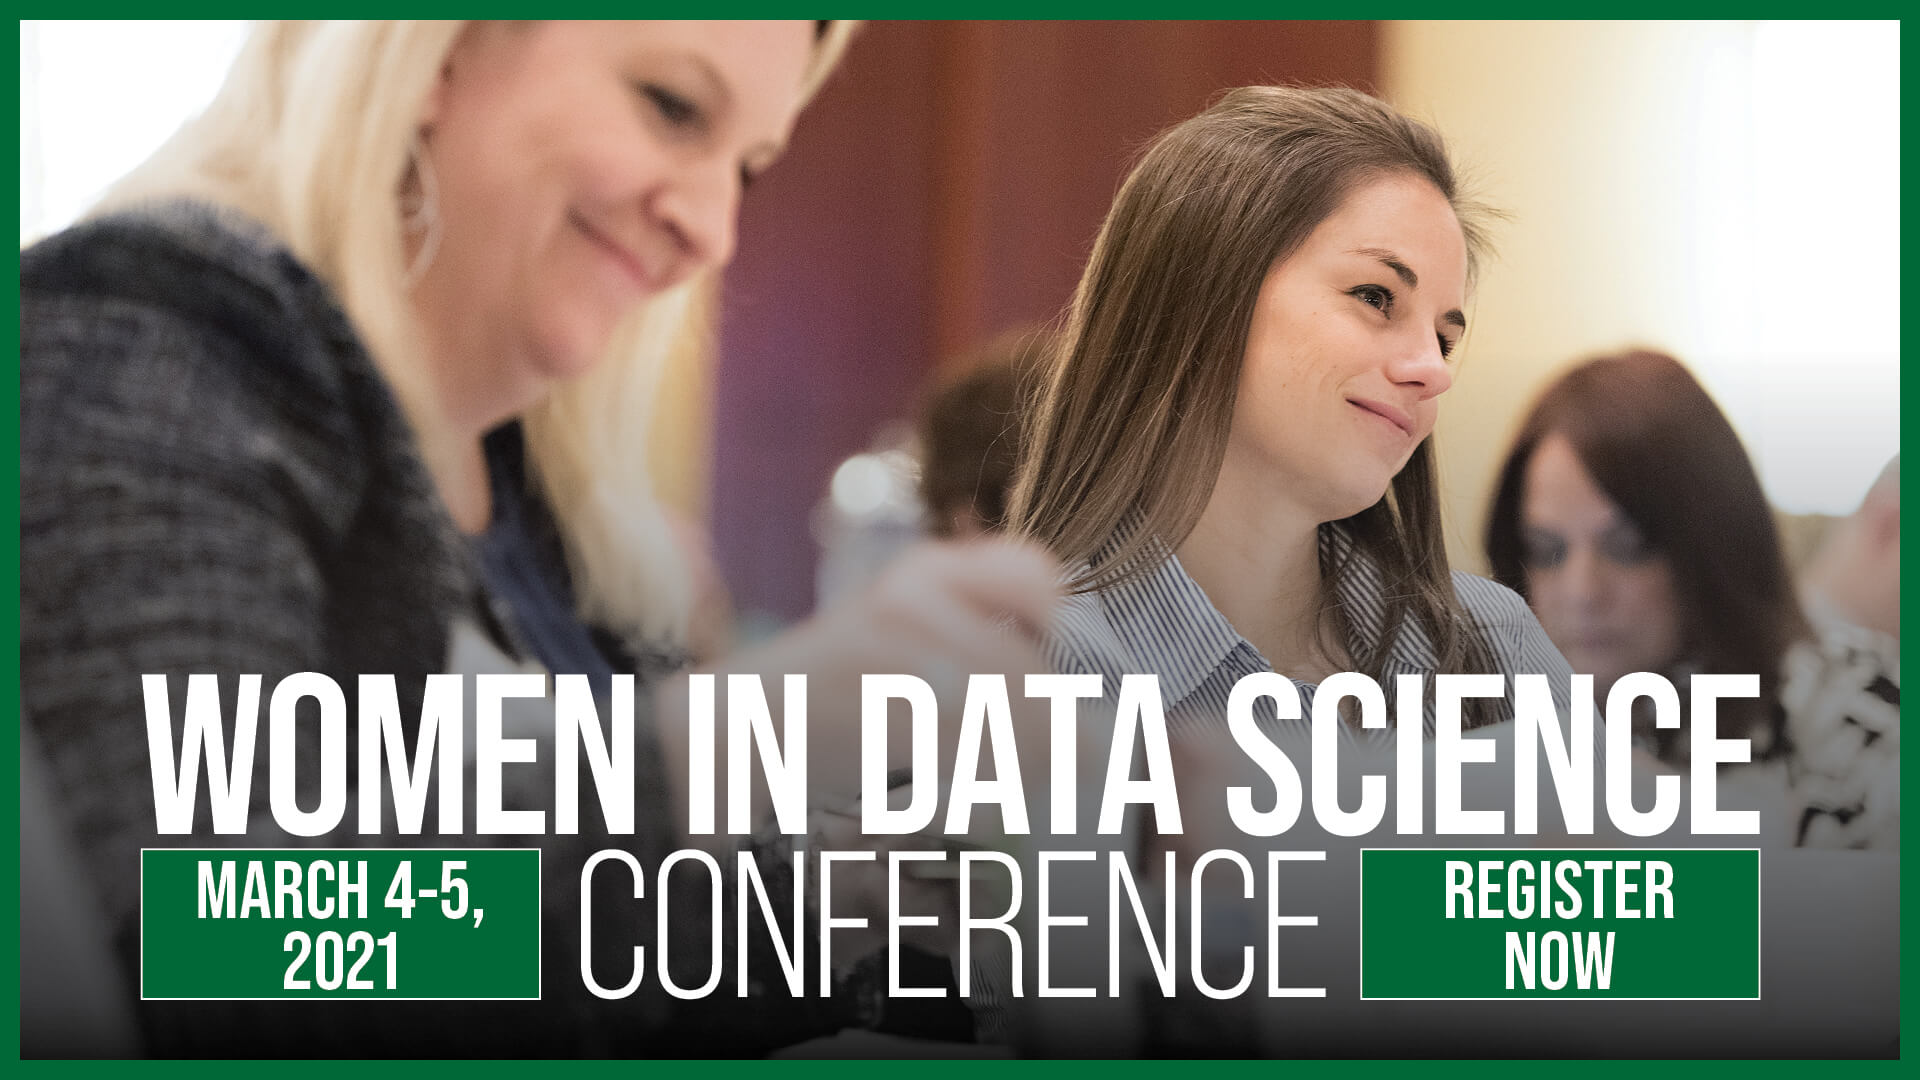 Register for the Women in Data Science Conference March 4-5, 2021